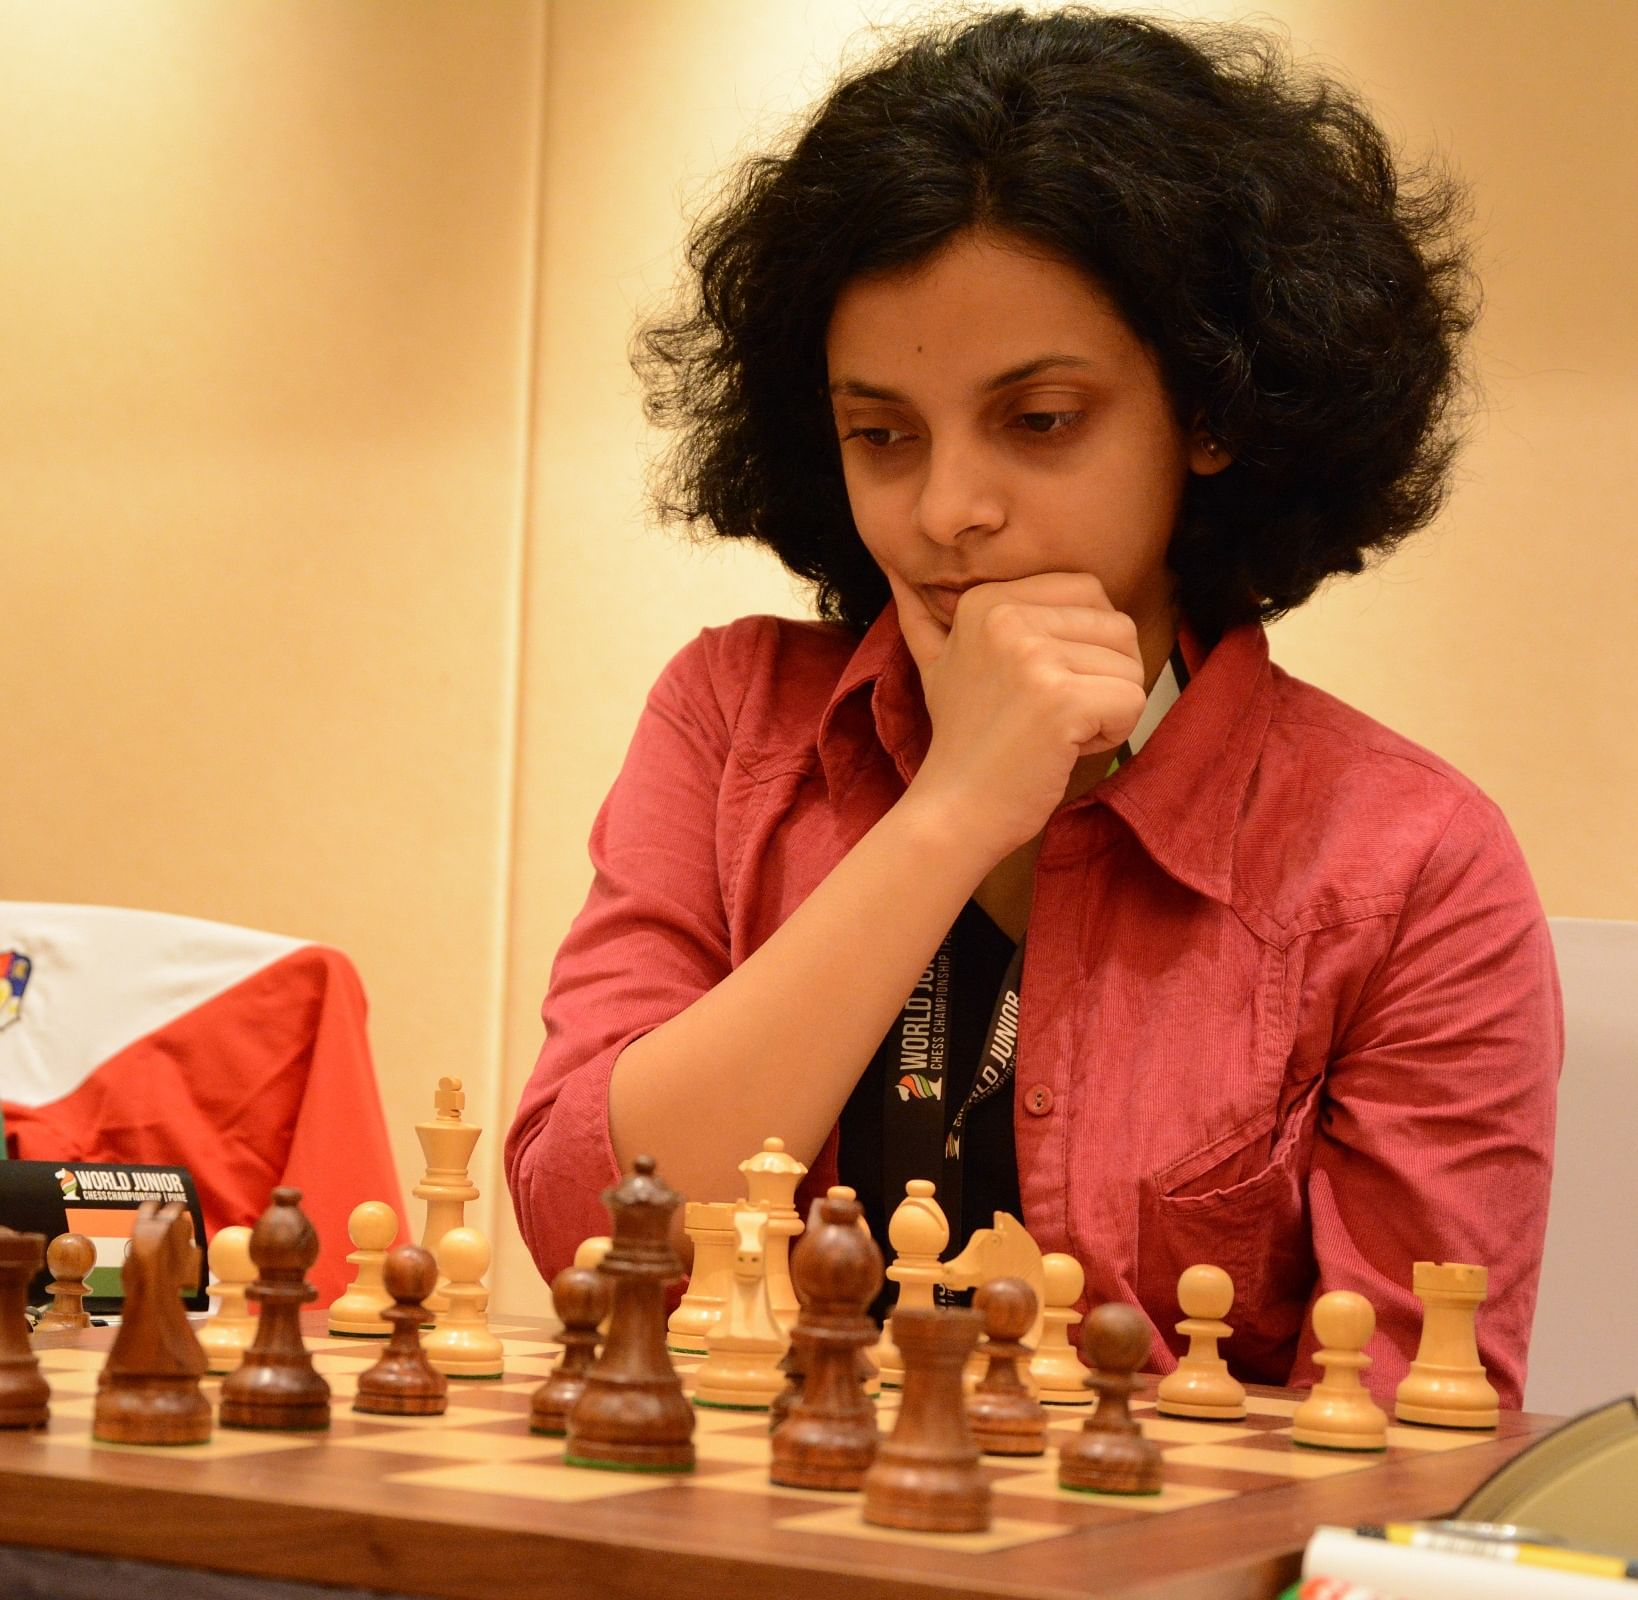 Padmini Rout showing promising signs at world junior chess championships